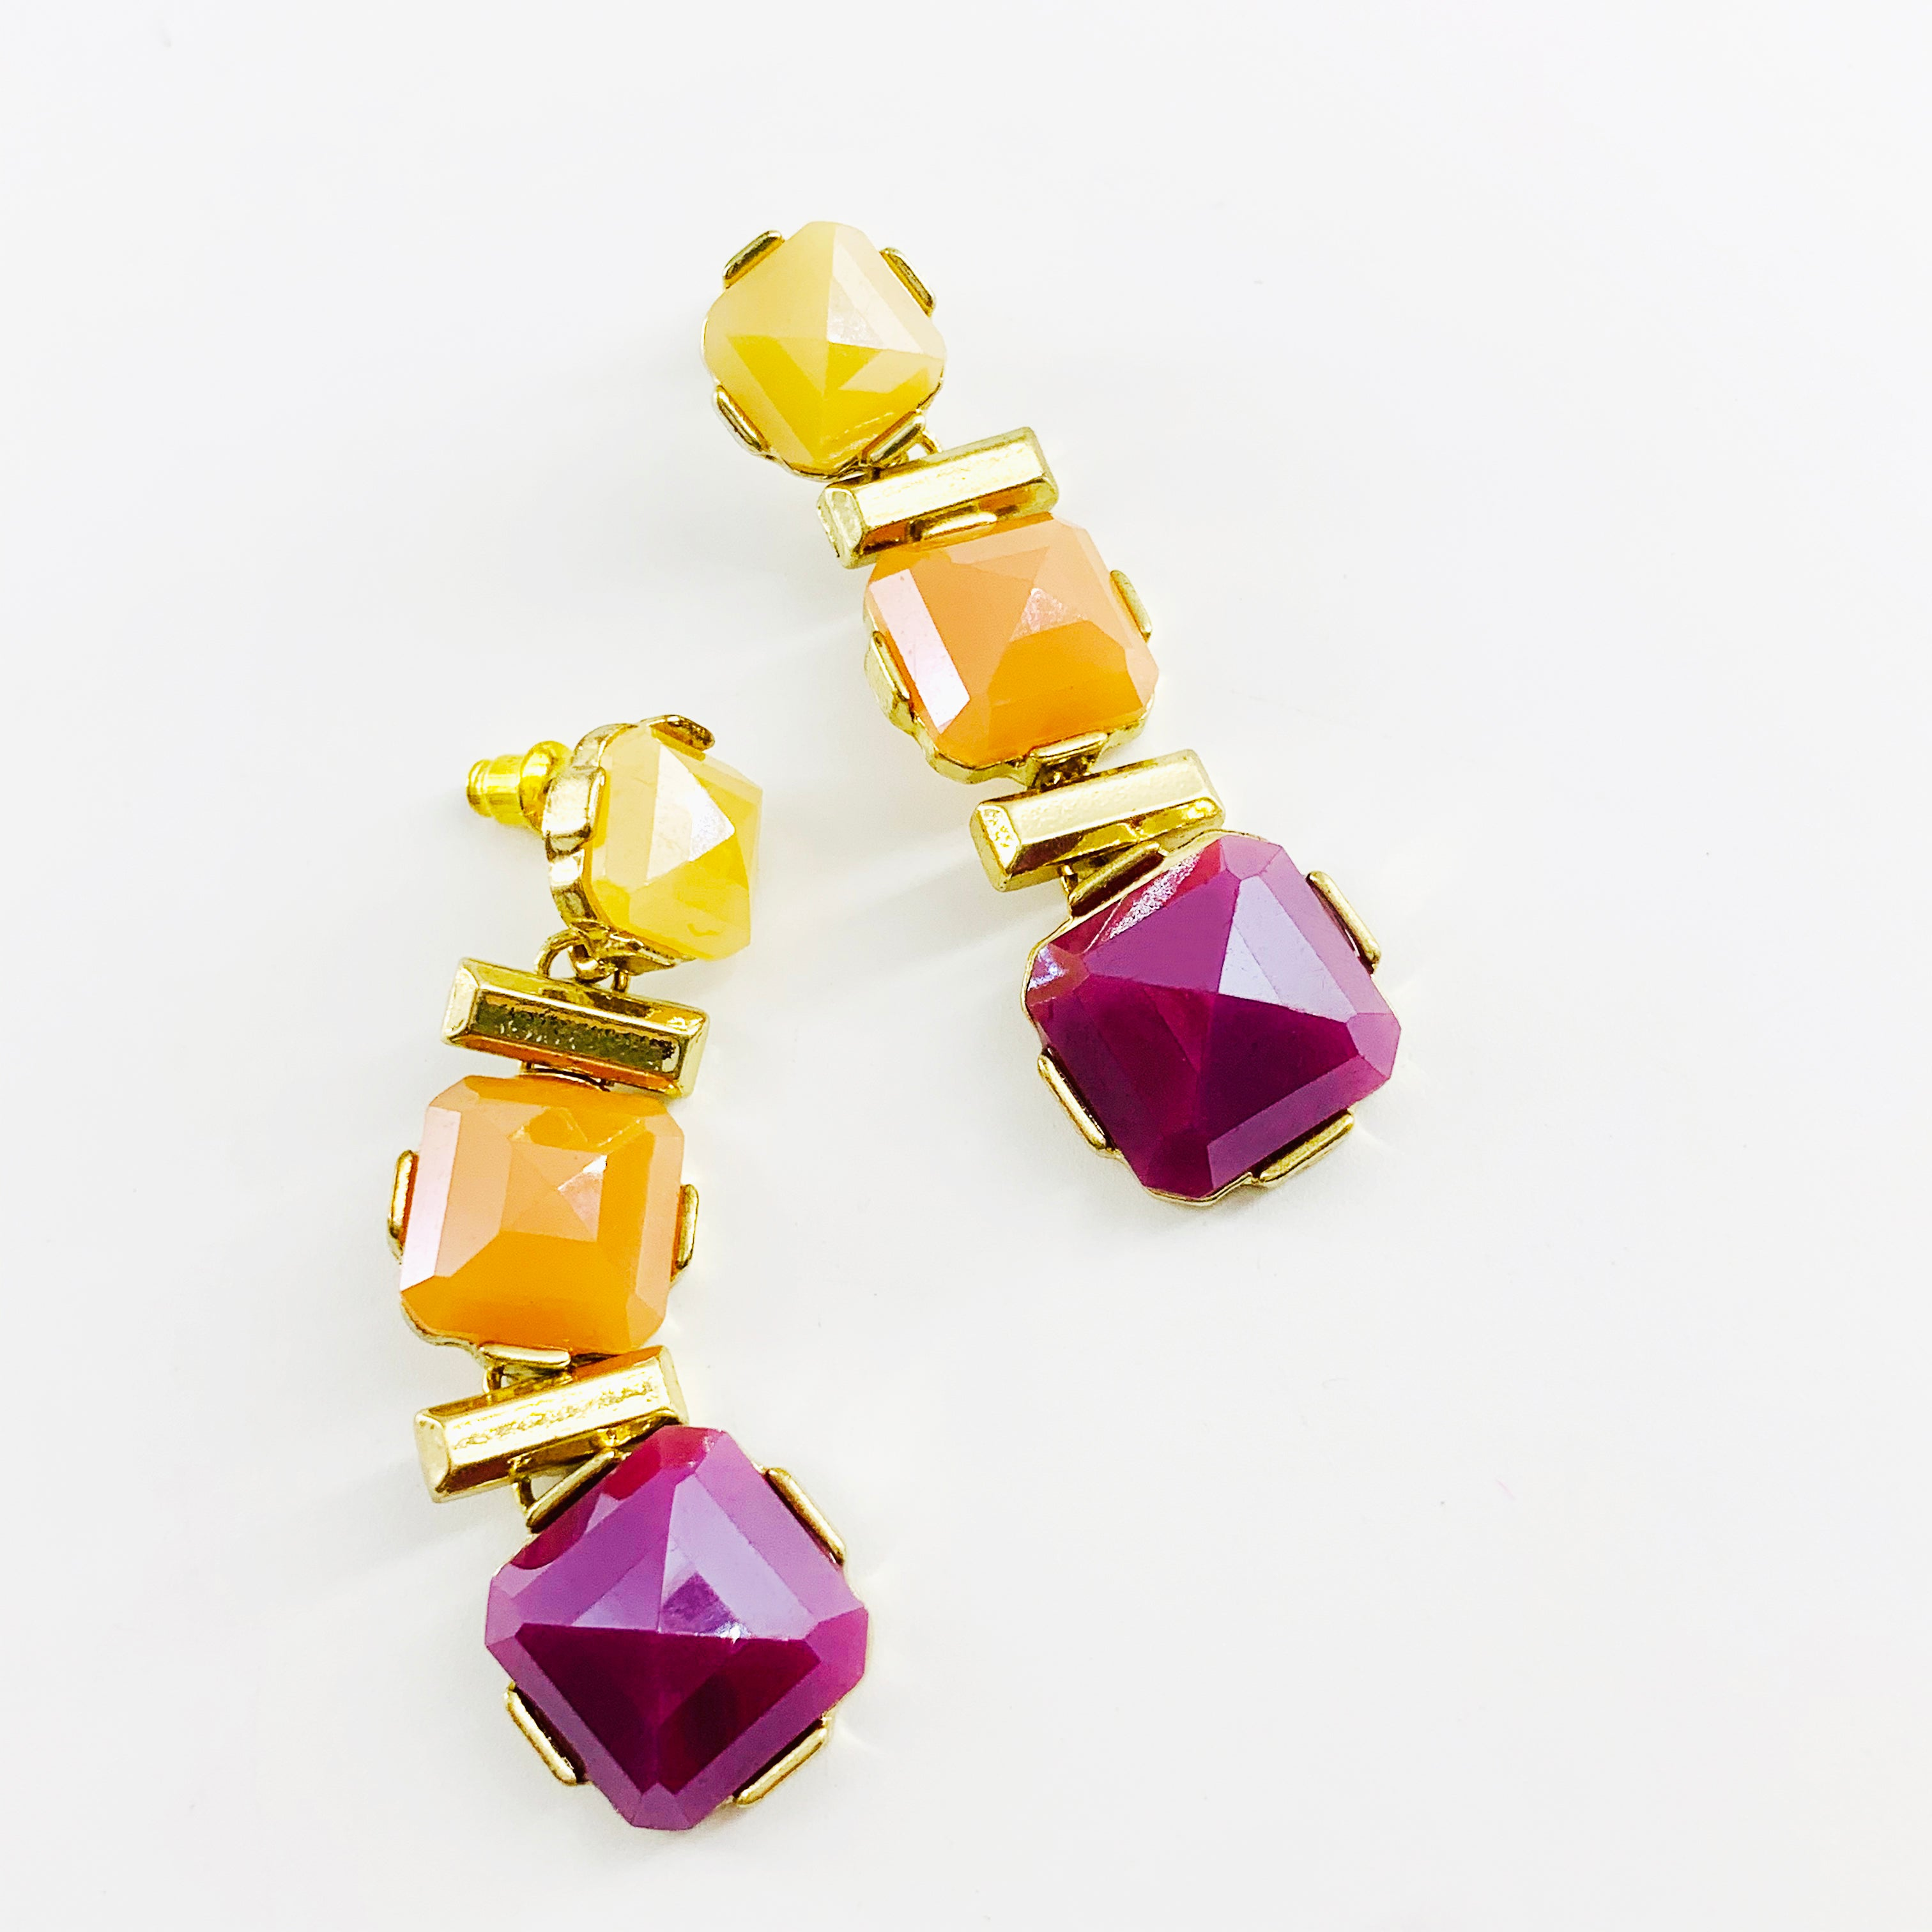 Yellow, orange and purple stones